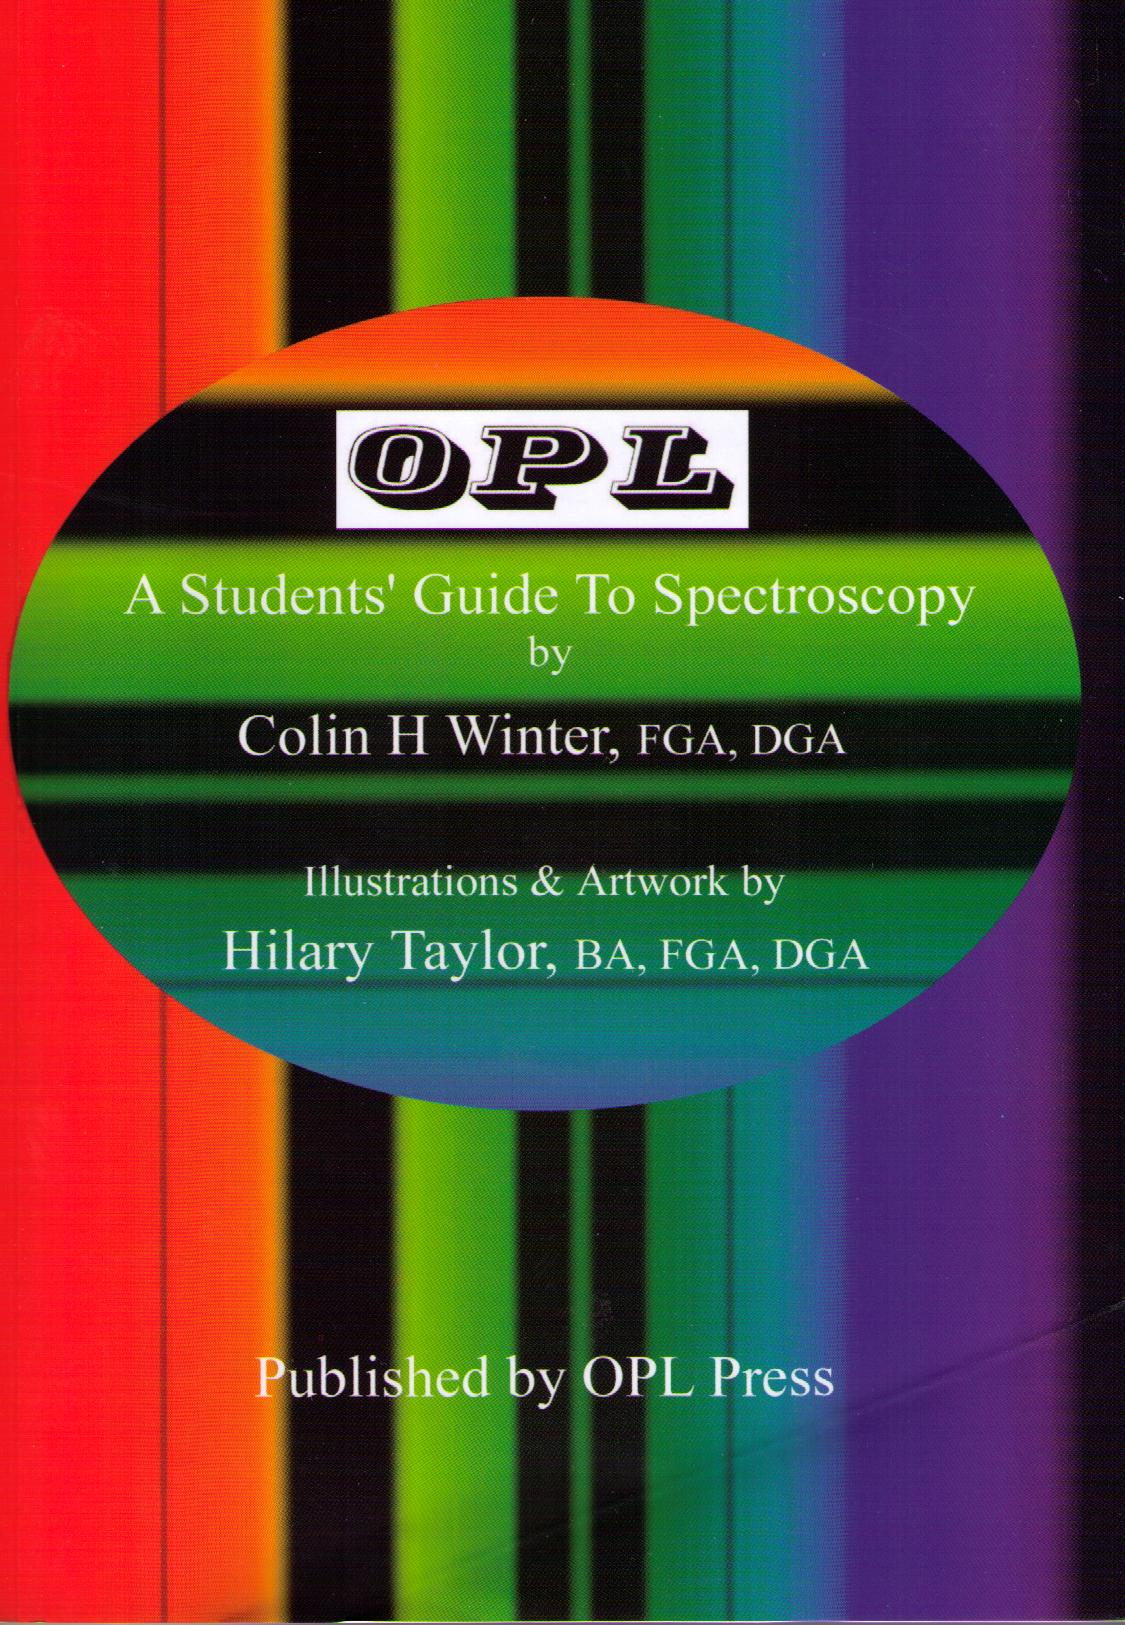 A Student's Guide to Spectroscopy